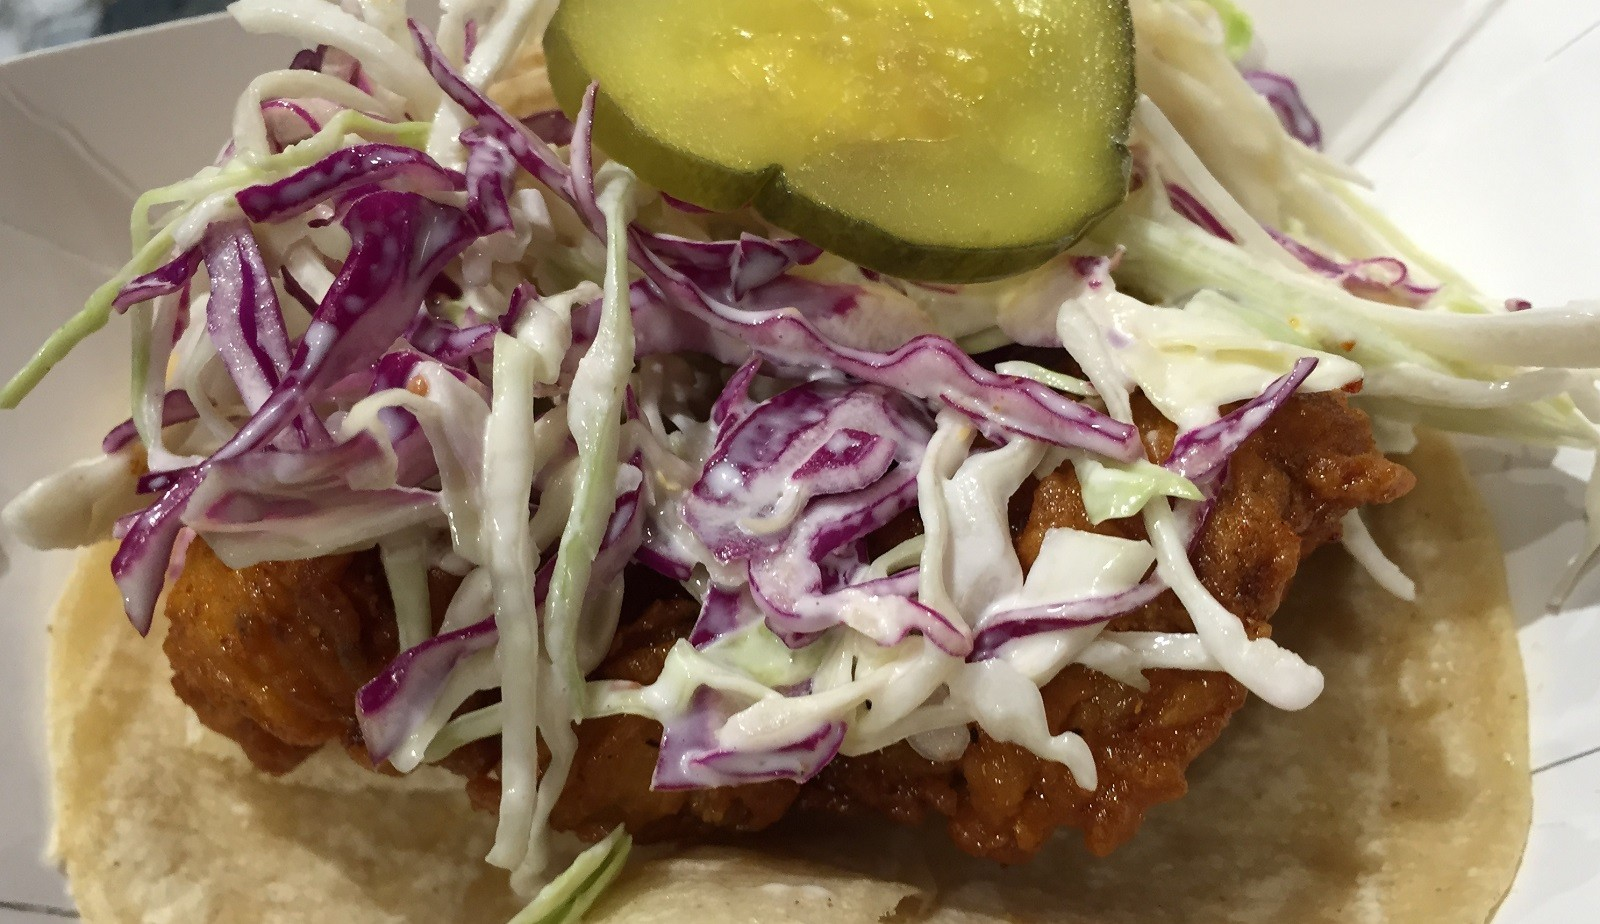 The Tennessee Hot Chicken taco from Lloyd Taco Truck, served at the truck's fifth birthday party. (Ben Tsujimoto/Buffalo News)